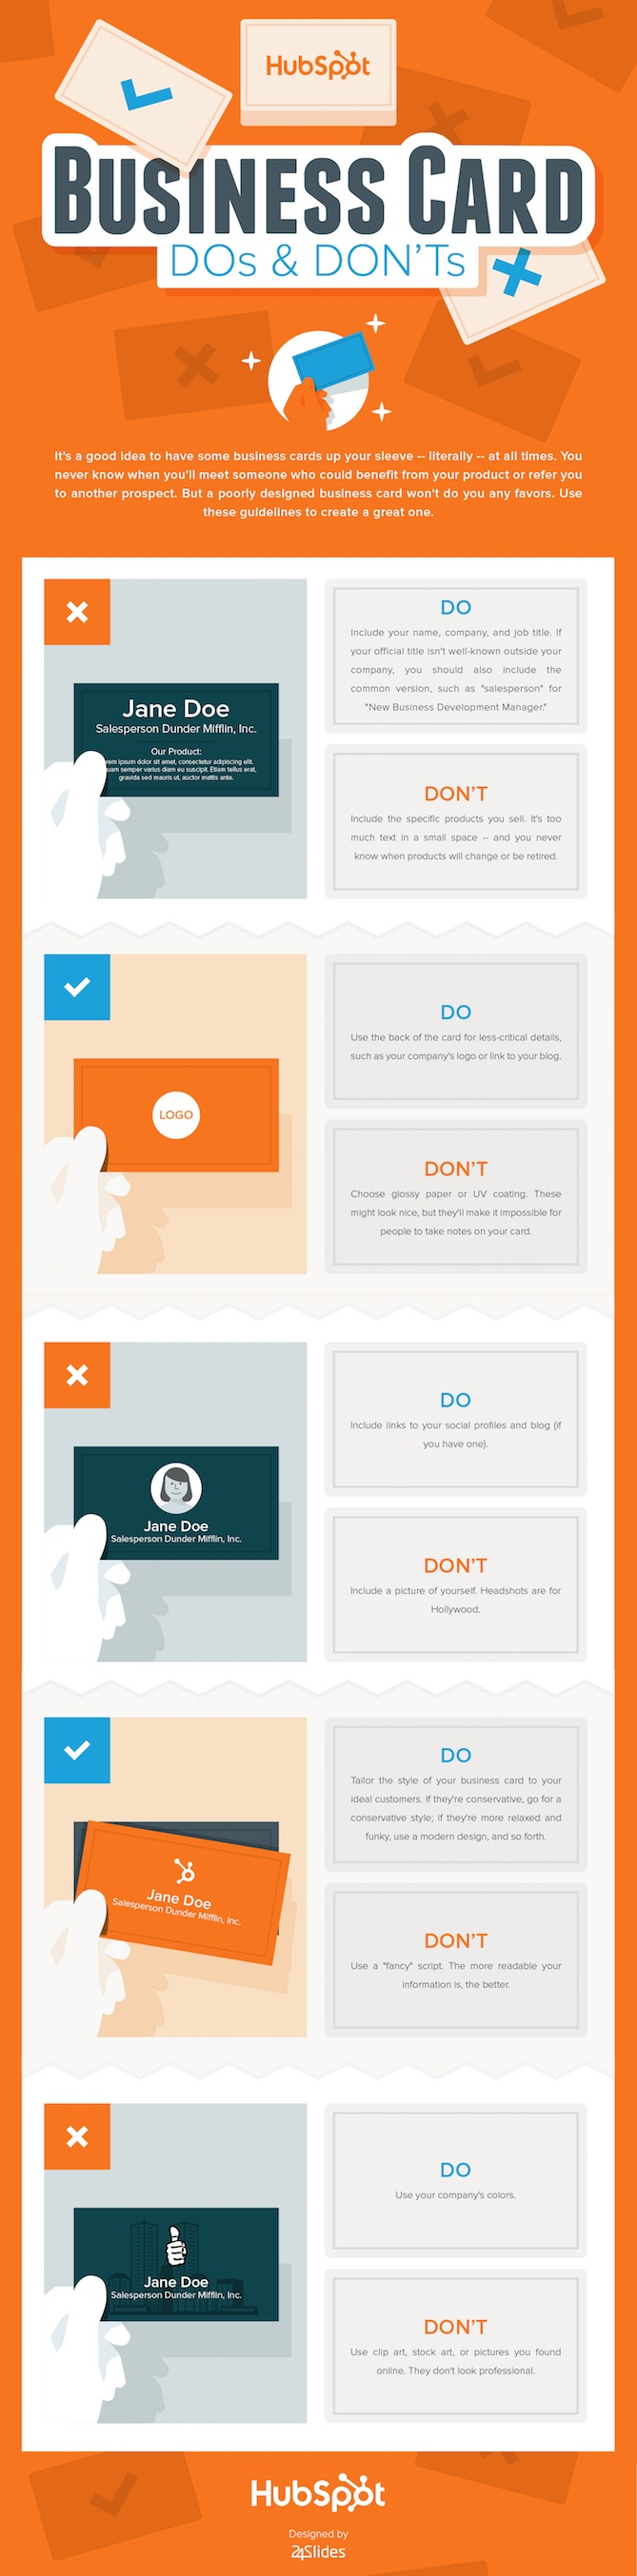 sales_business_card_dos_donts_infographic.jpg